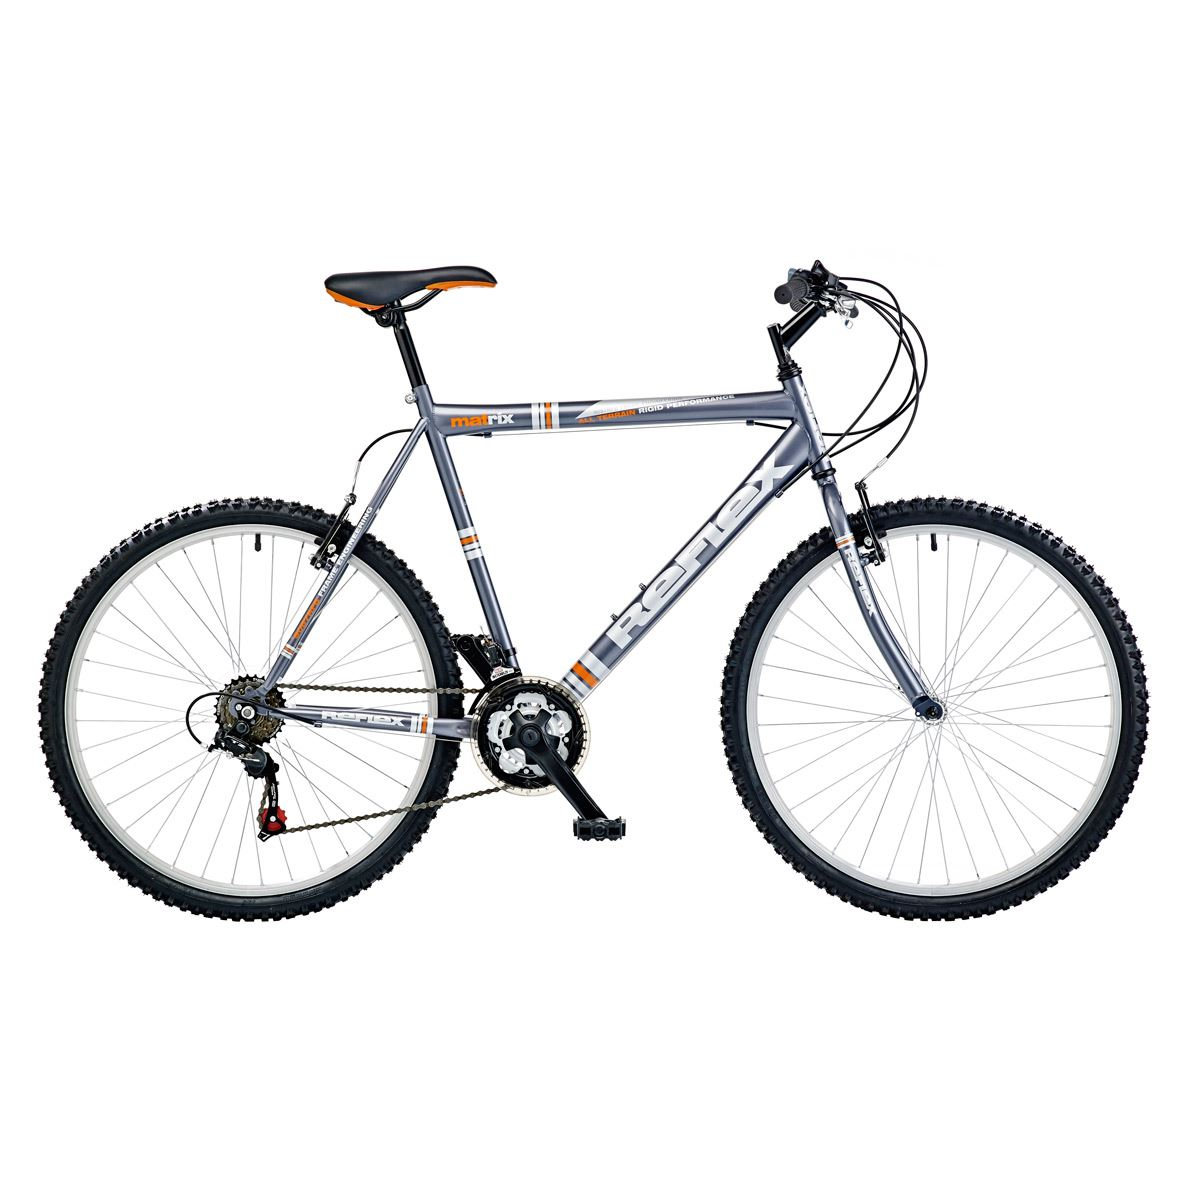 Reflex-Matrix-Gents-Mens-Mountain-Bike-18-Speed-Bicycle-Cycle